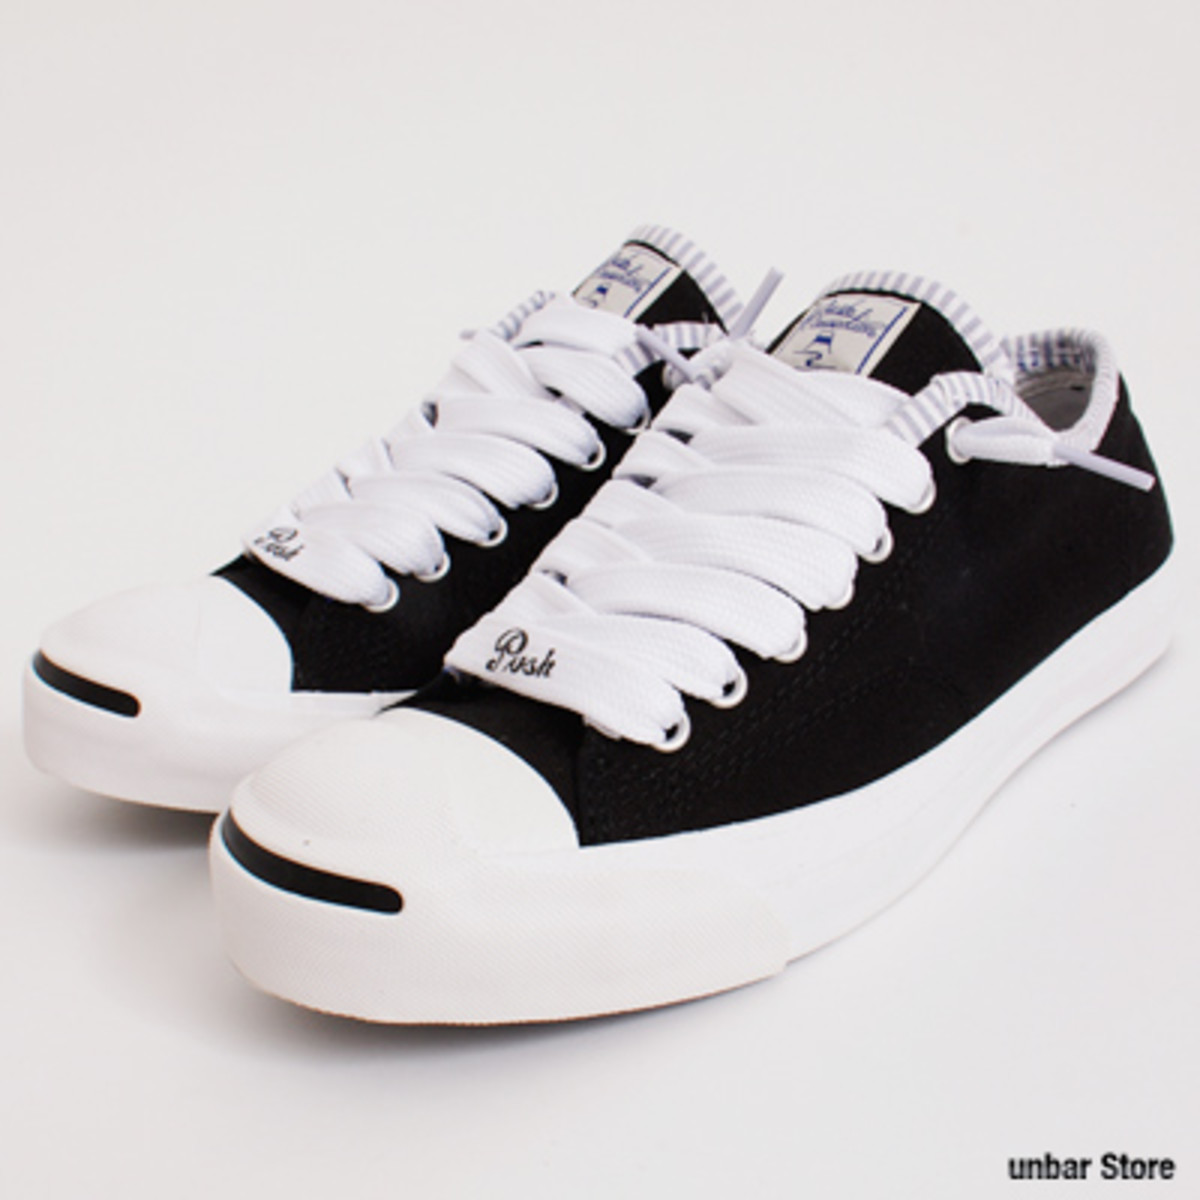 push-connection-converse-jack-purcell-remake-01